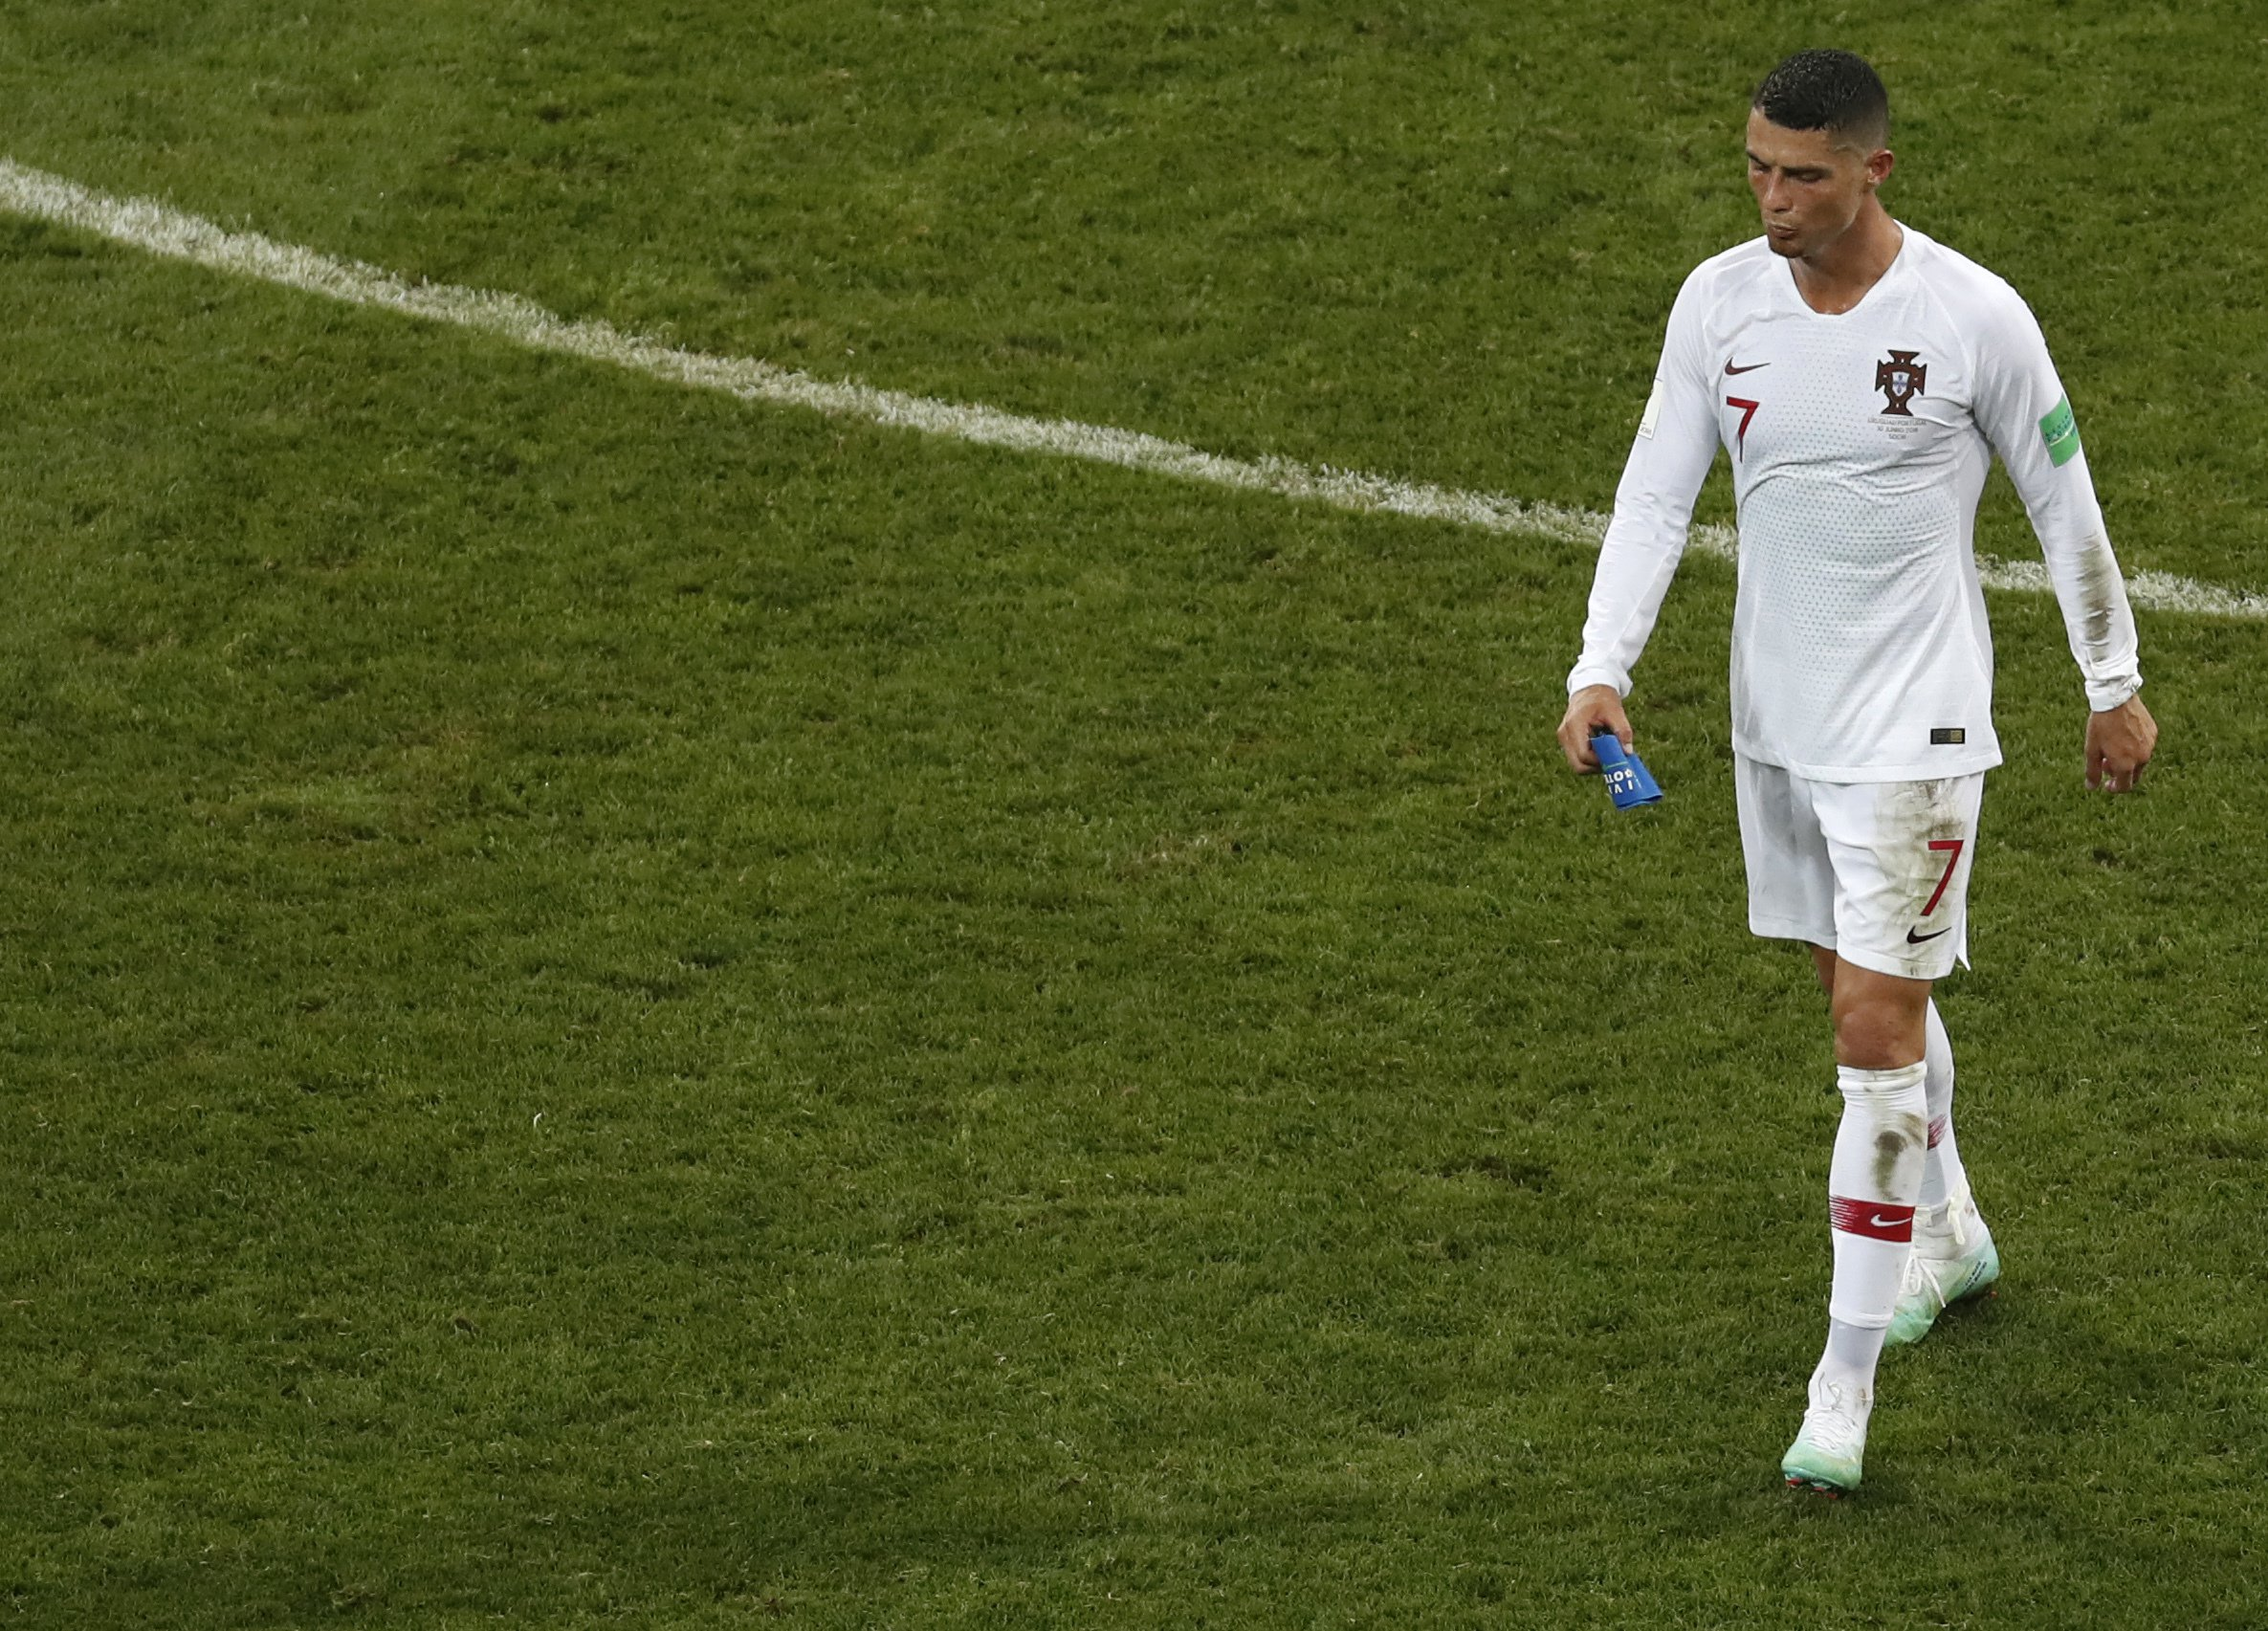 Cristiano Ronaldo not thinking about retirement after Portugal knocked out of World Cup